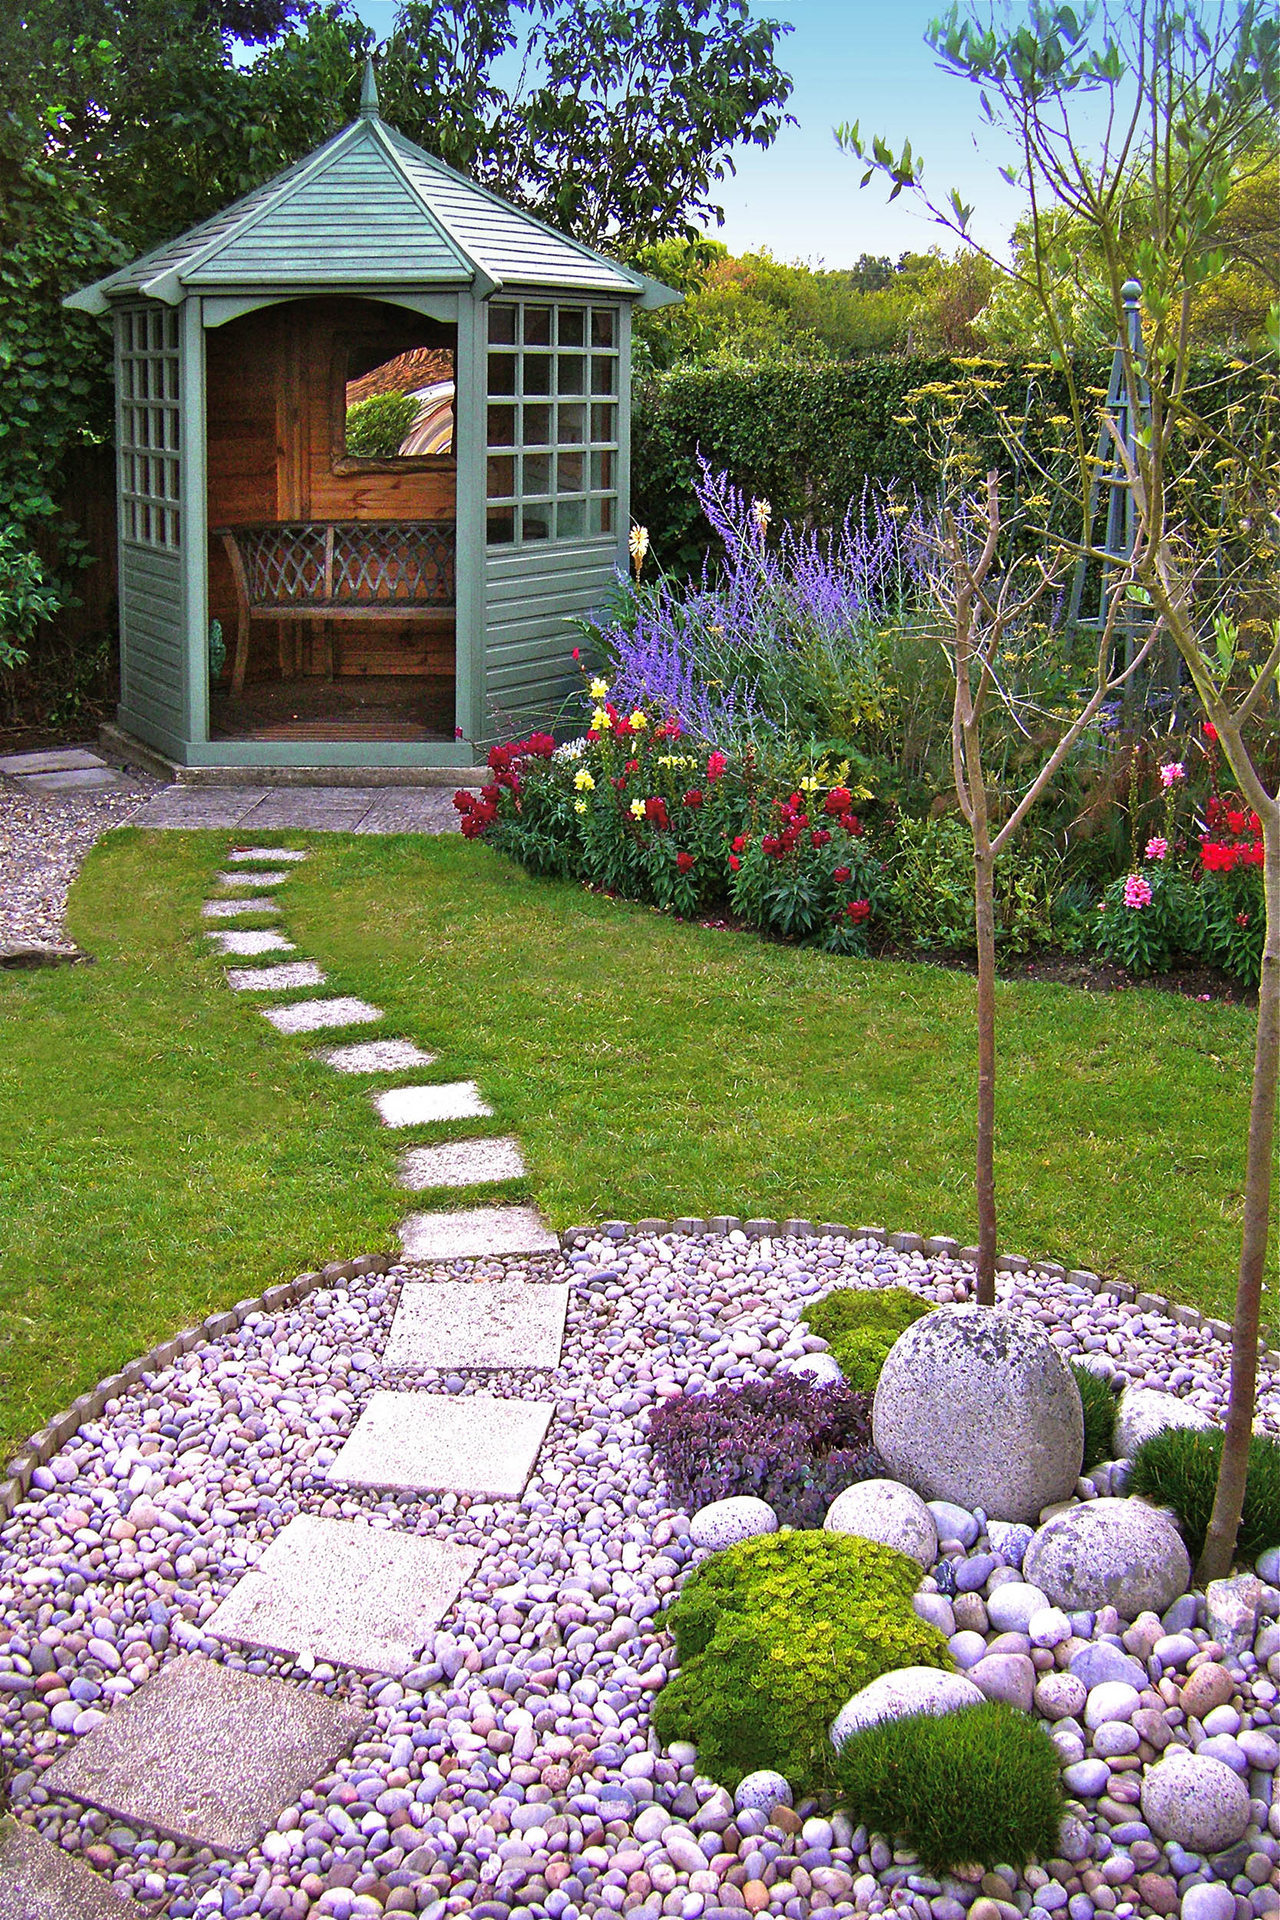 50 Best Backyard Landscaping Ideas And Designs In 2019 with Backyard Pics Landscaping